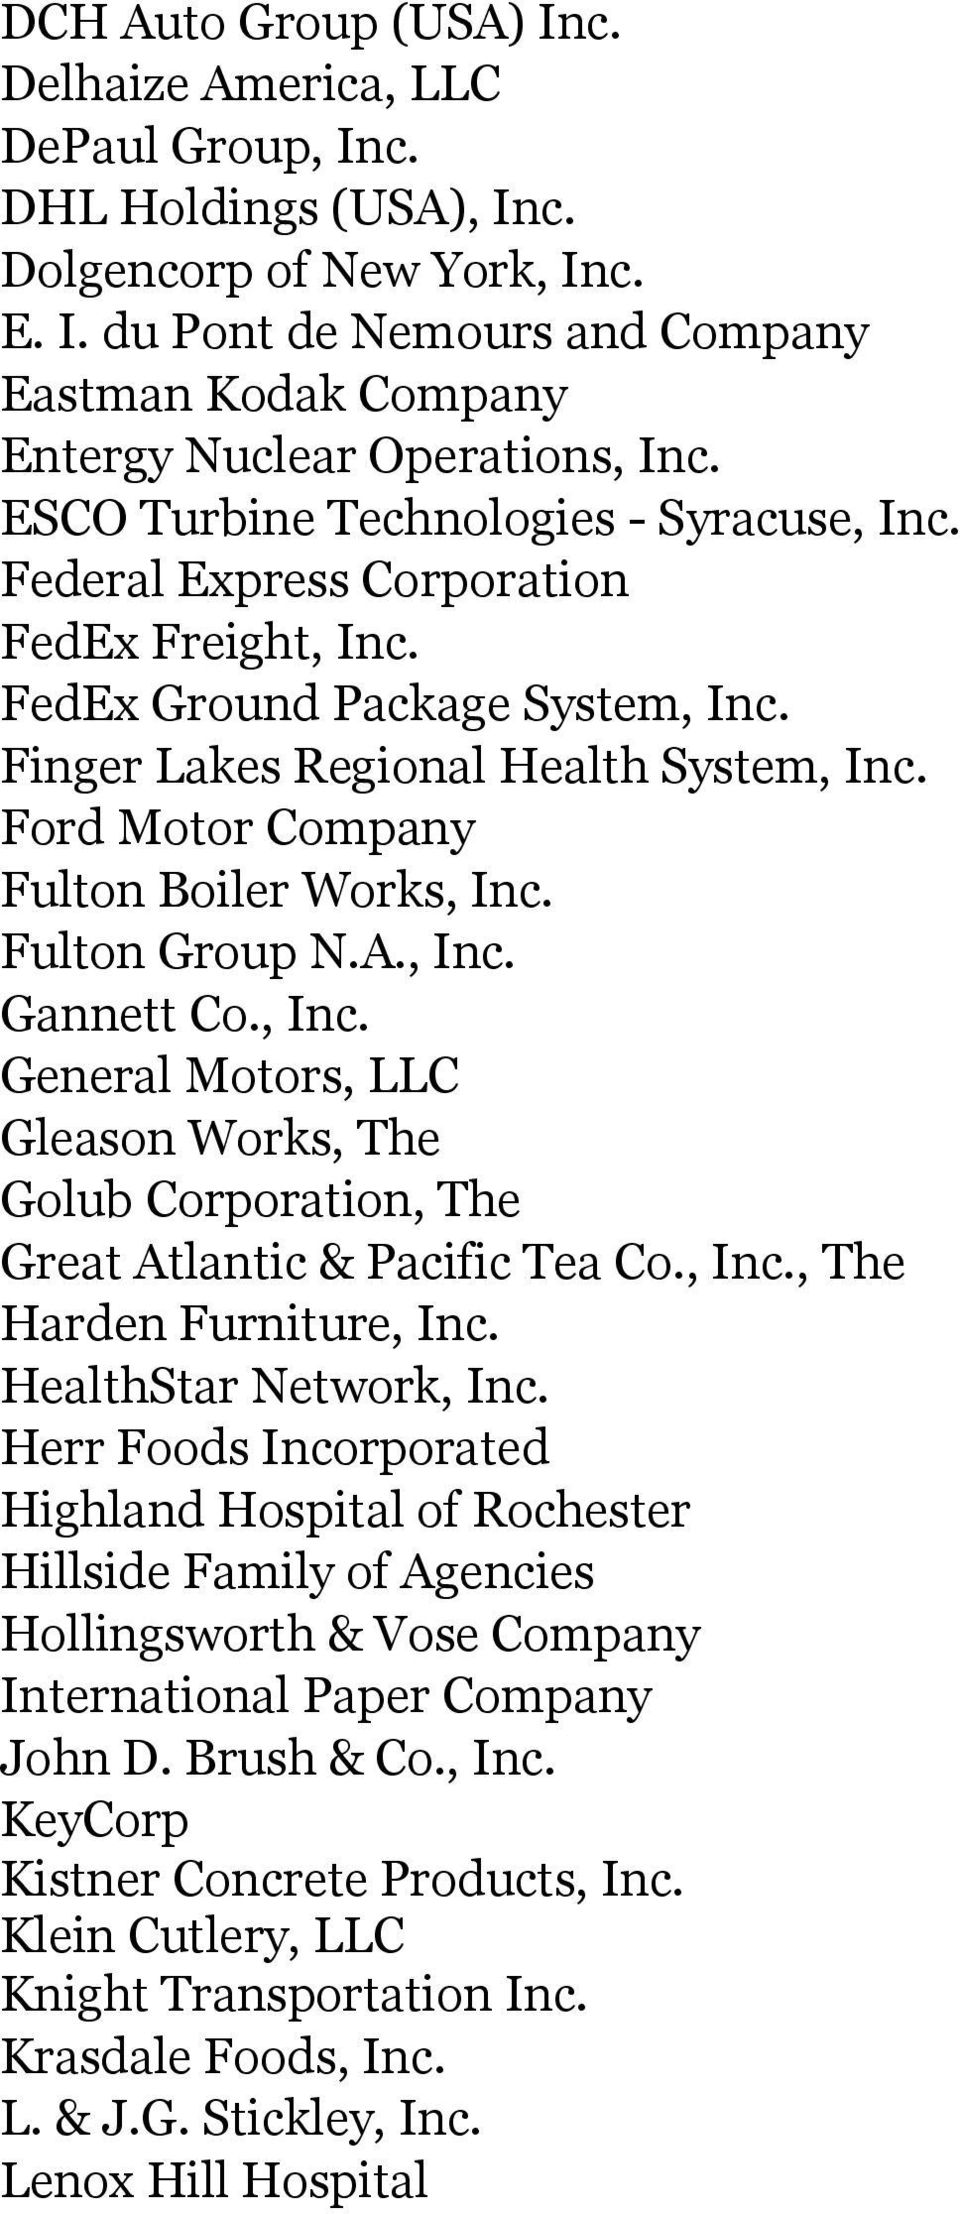 Ford Motor Company Fulton Boiler Works, Inc. Fulton Group N.A., Inc. Gannett Co., Inc. General Motors, LLC Gleason Works, The Golub Corporation, The Great Atlantic & Pacific Tea Co., Inc., The Harden Furniture, Inc.